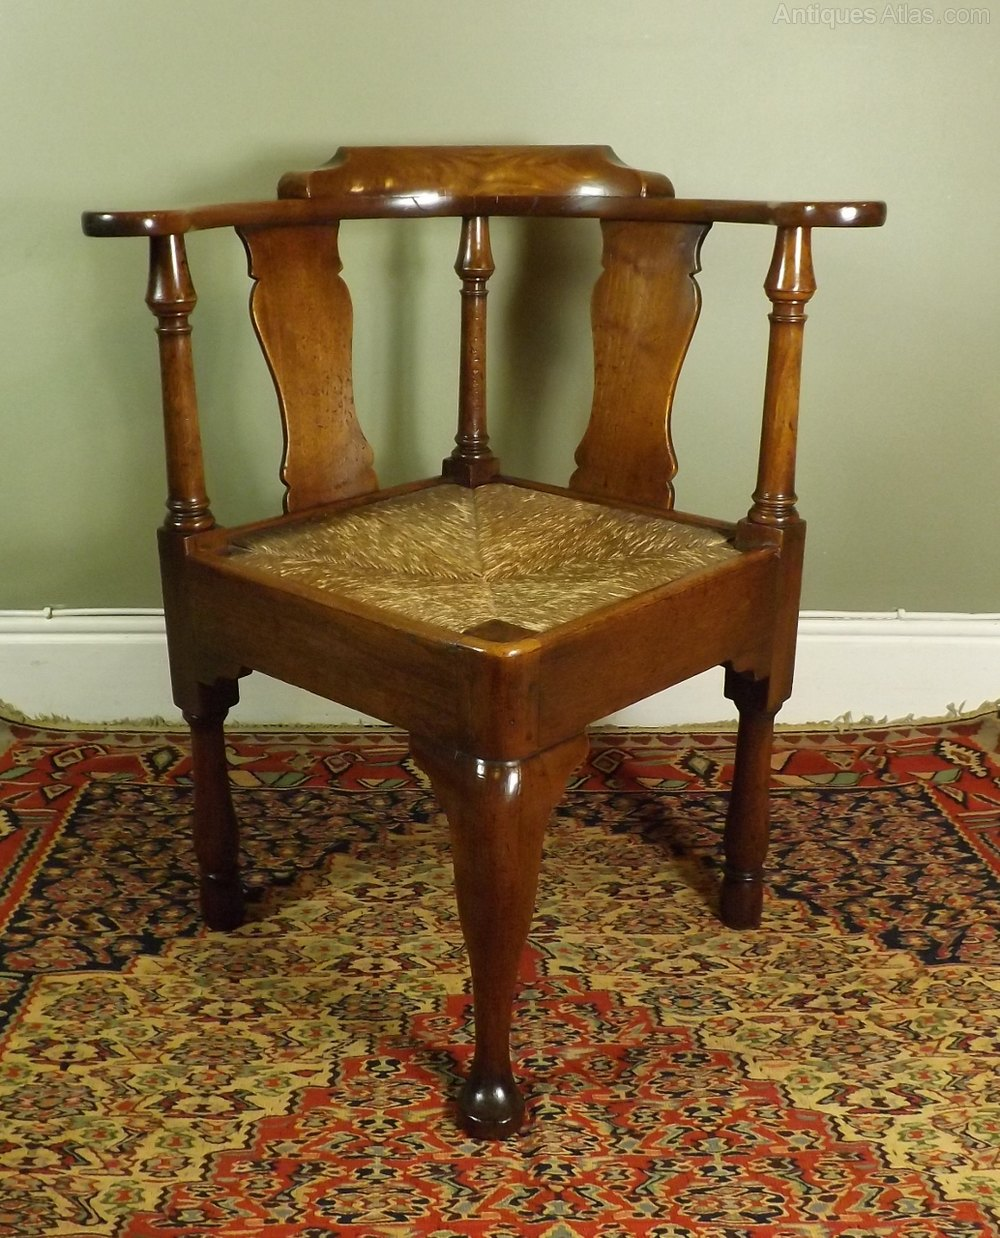 - George III Walnut Corner Chair - Antiques Atlas